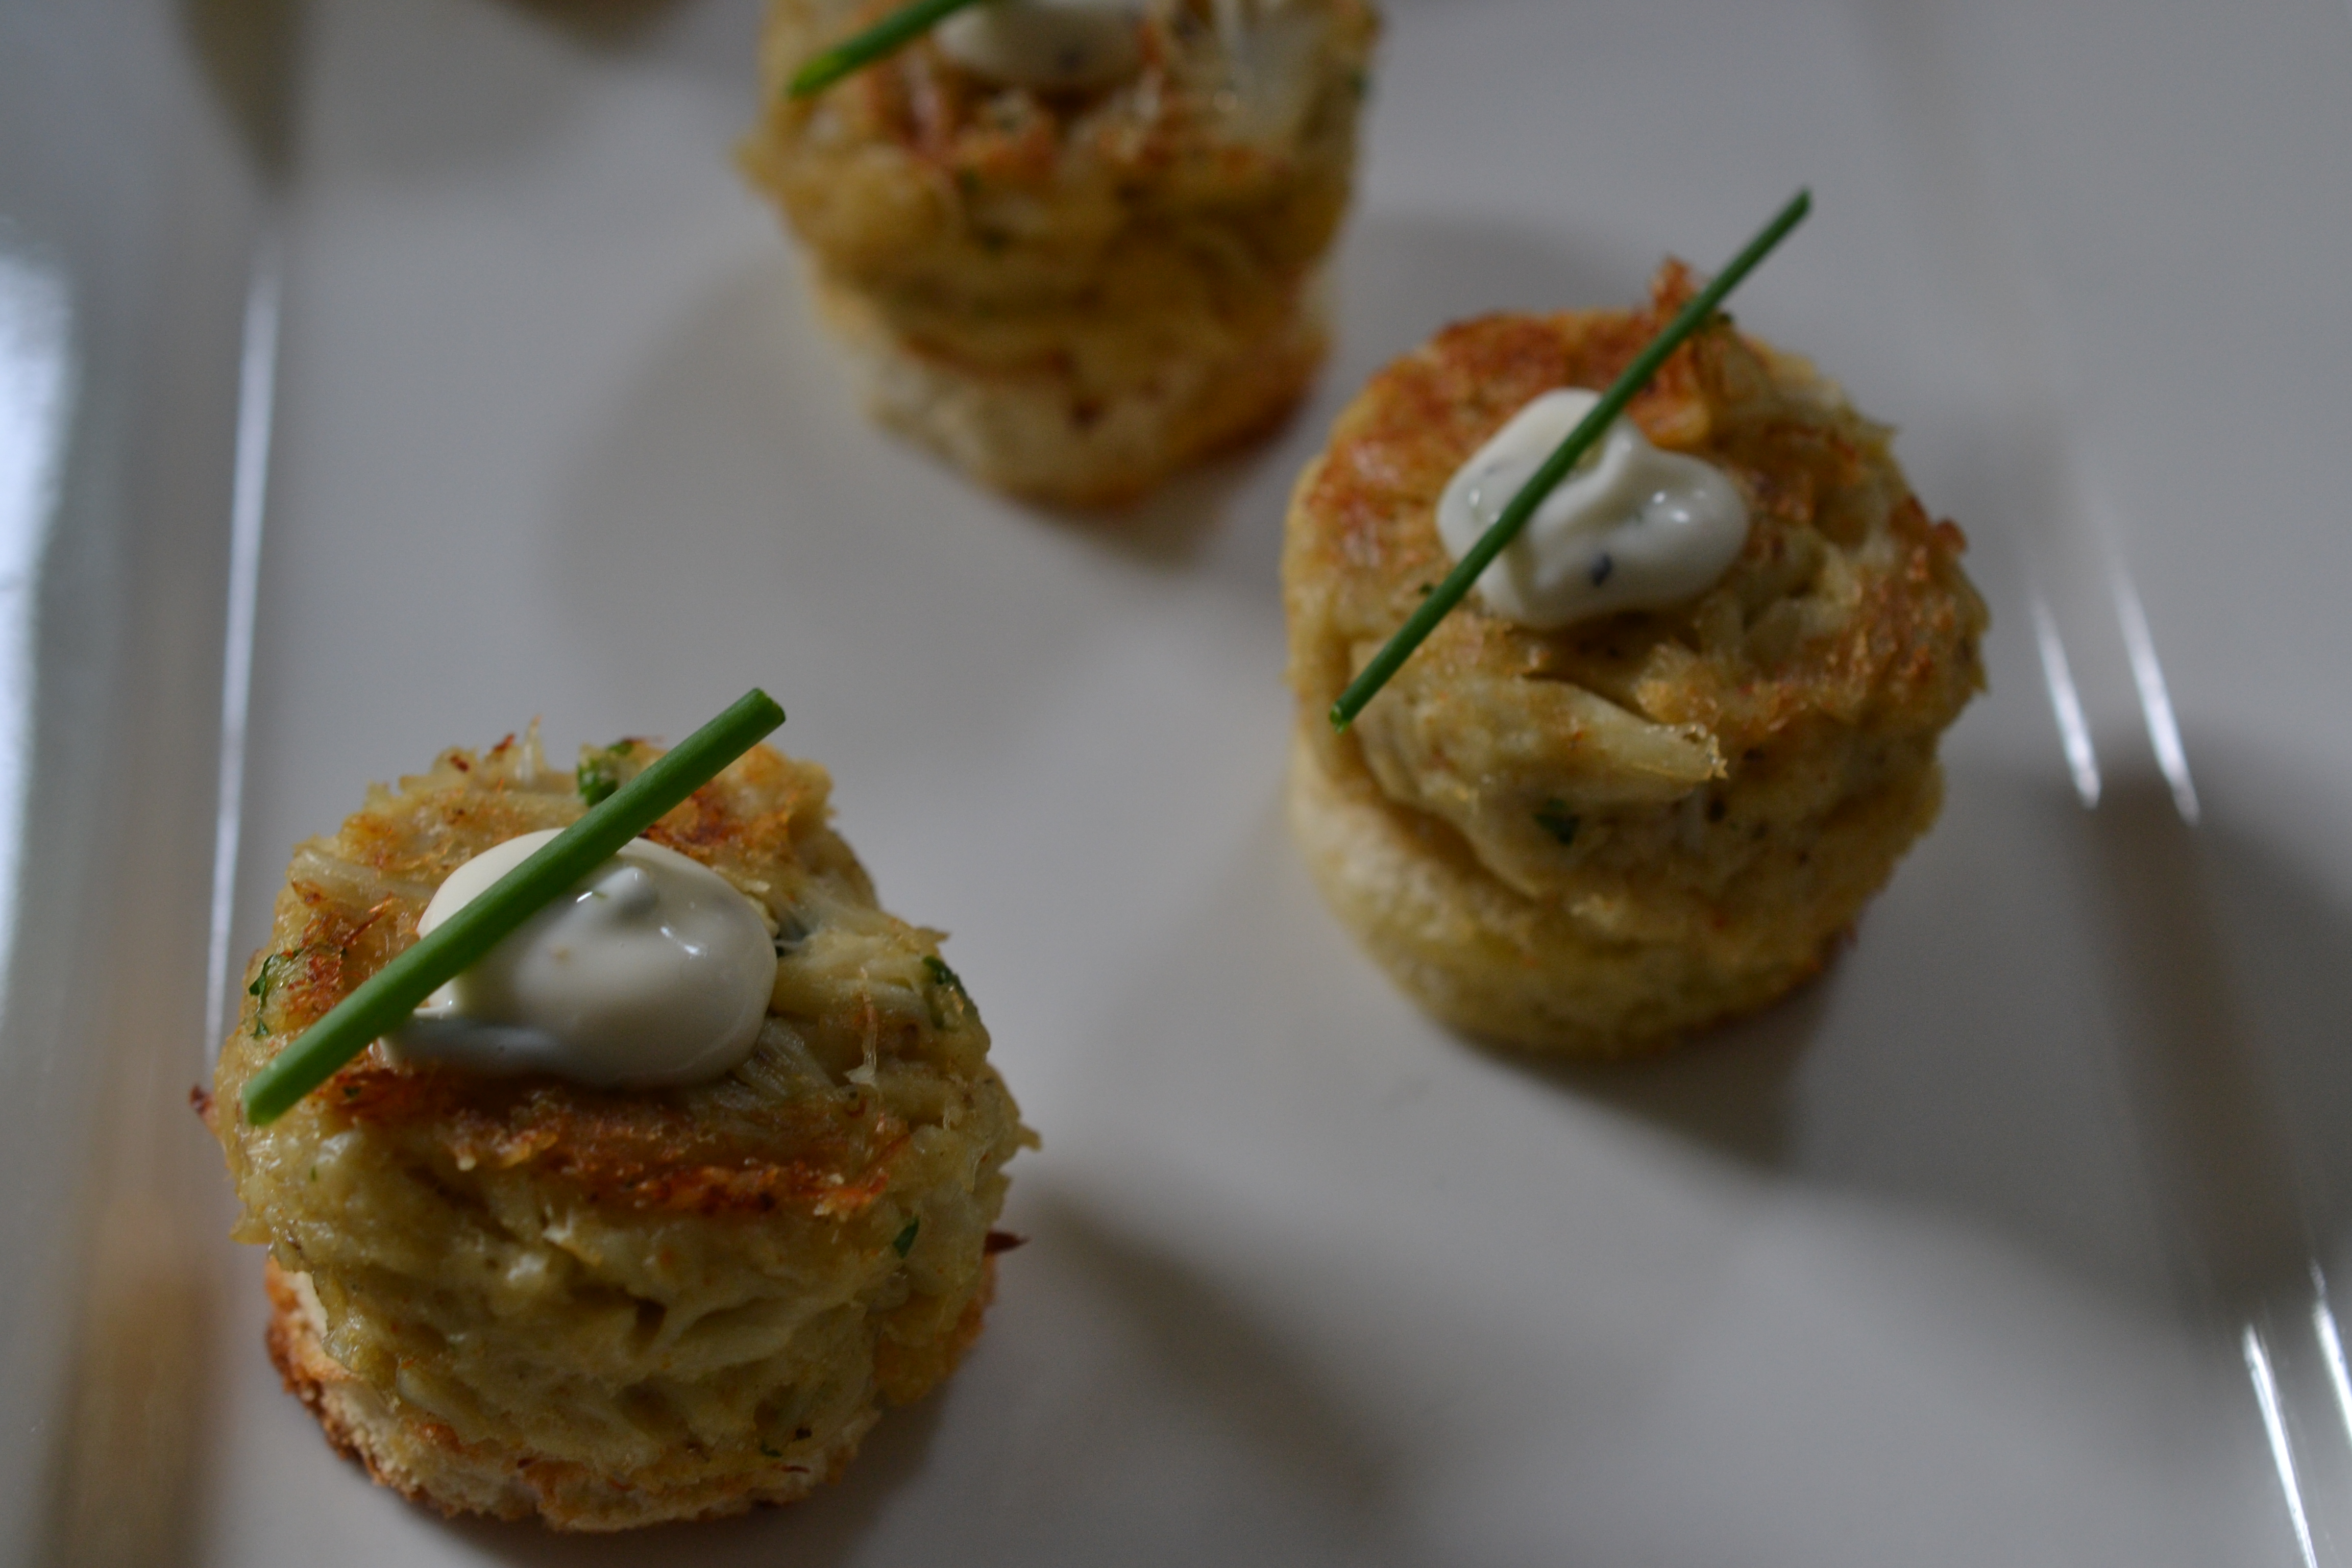 Maryland Crab Cakes with Lemon Aioli Shredded Sprout